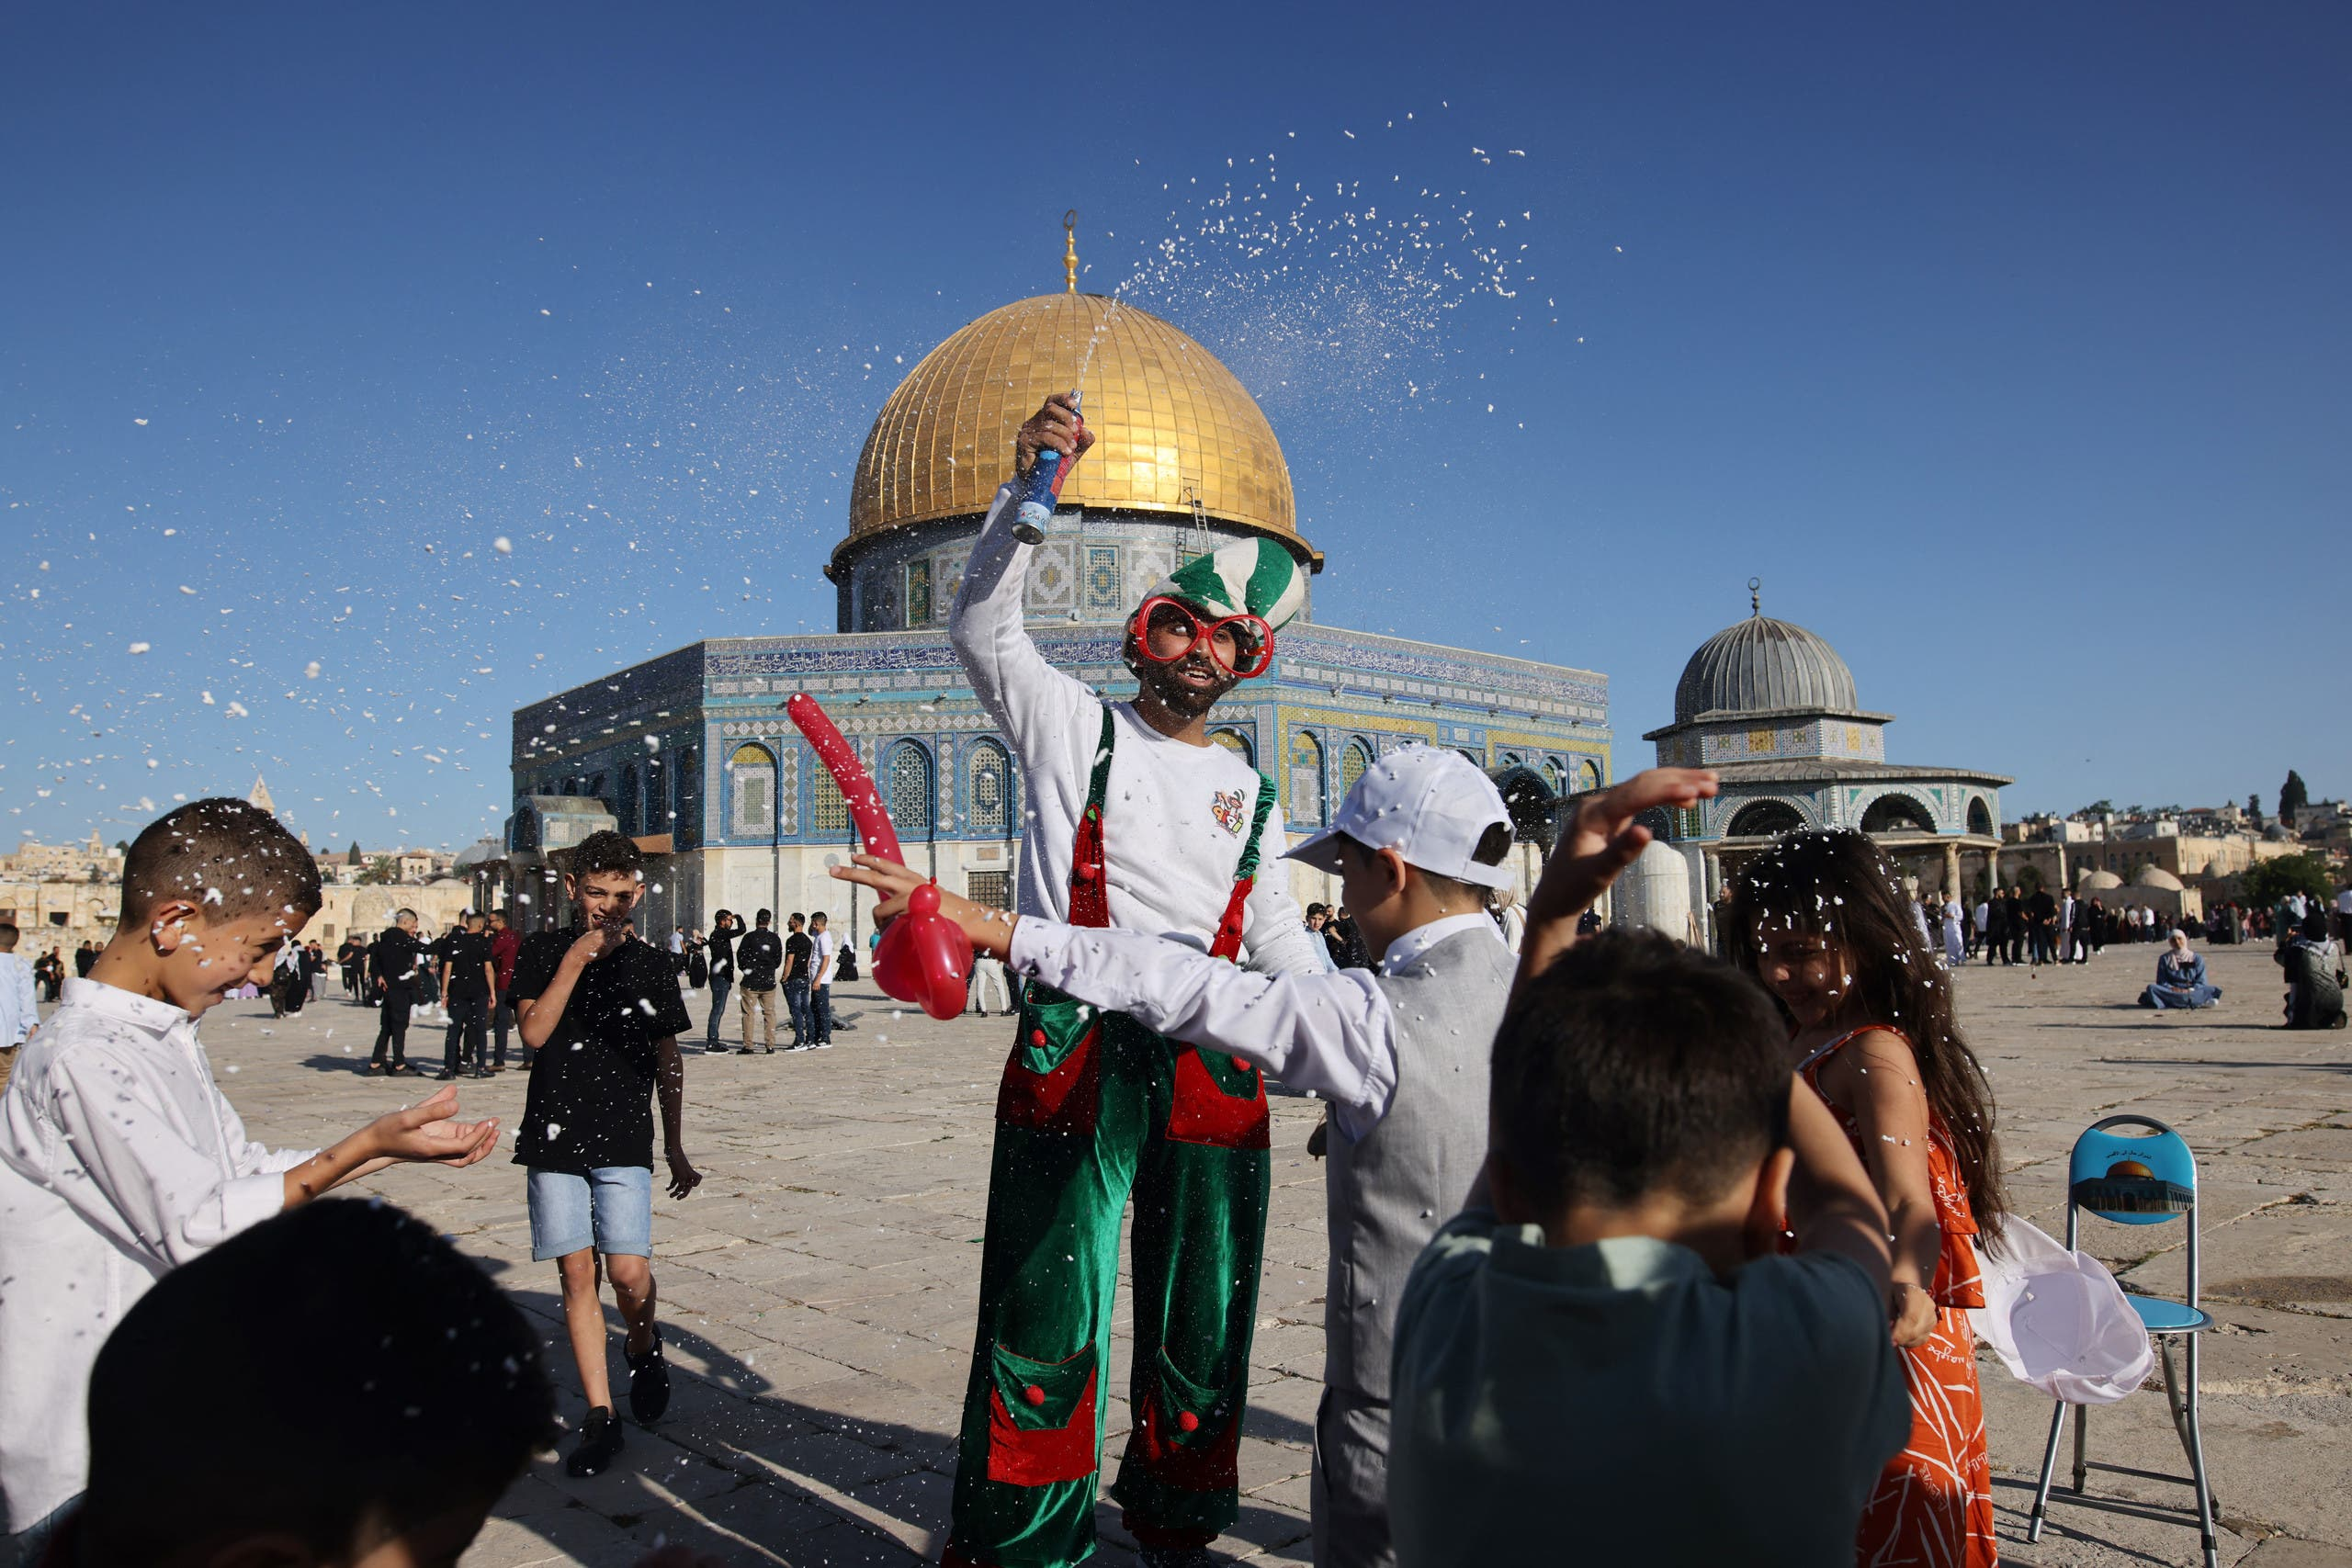 Muslim children celebrate in front of the Dome of the Rock mosque after the morning Eid al-Fitr prayer at the al-Aqsa mosques compound in Old Jerusalem early on May 13, 2021. (AFP)